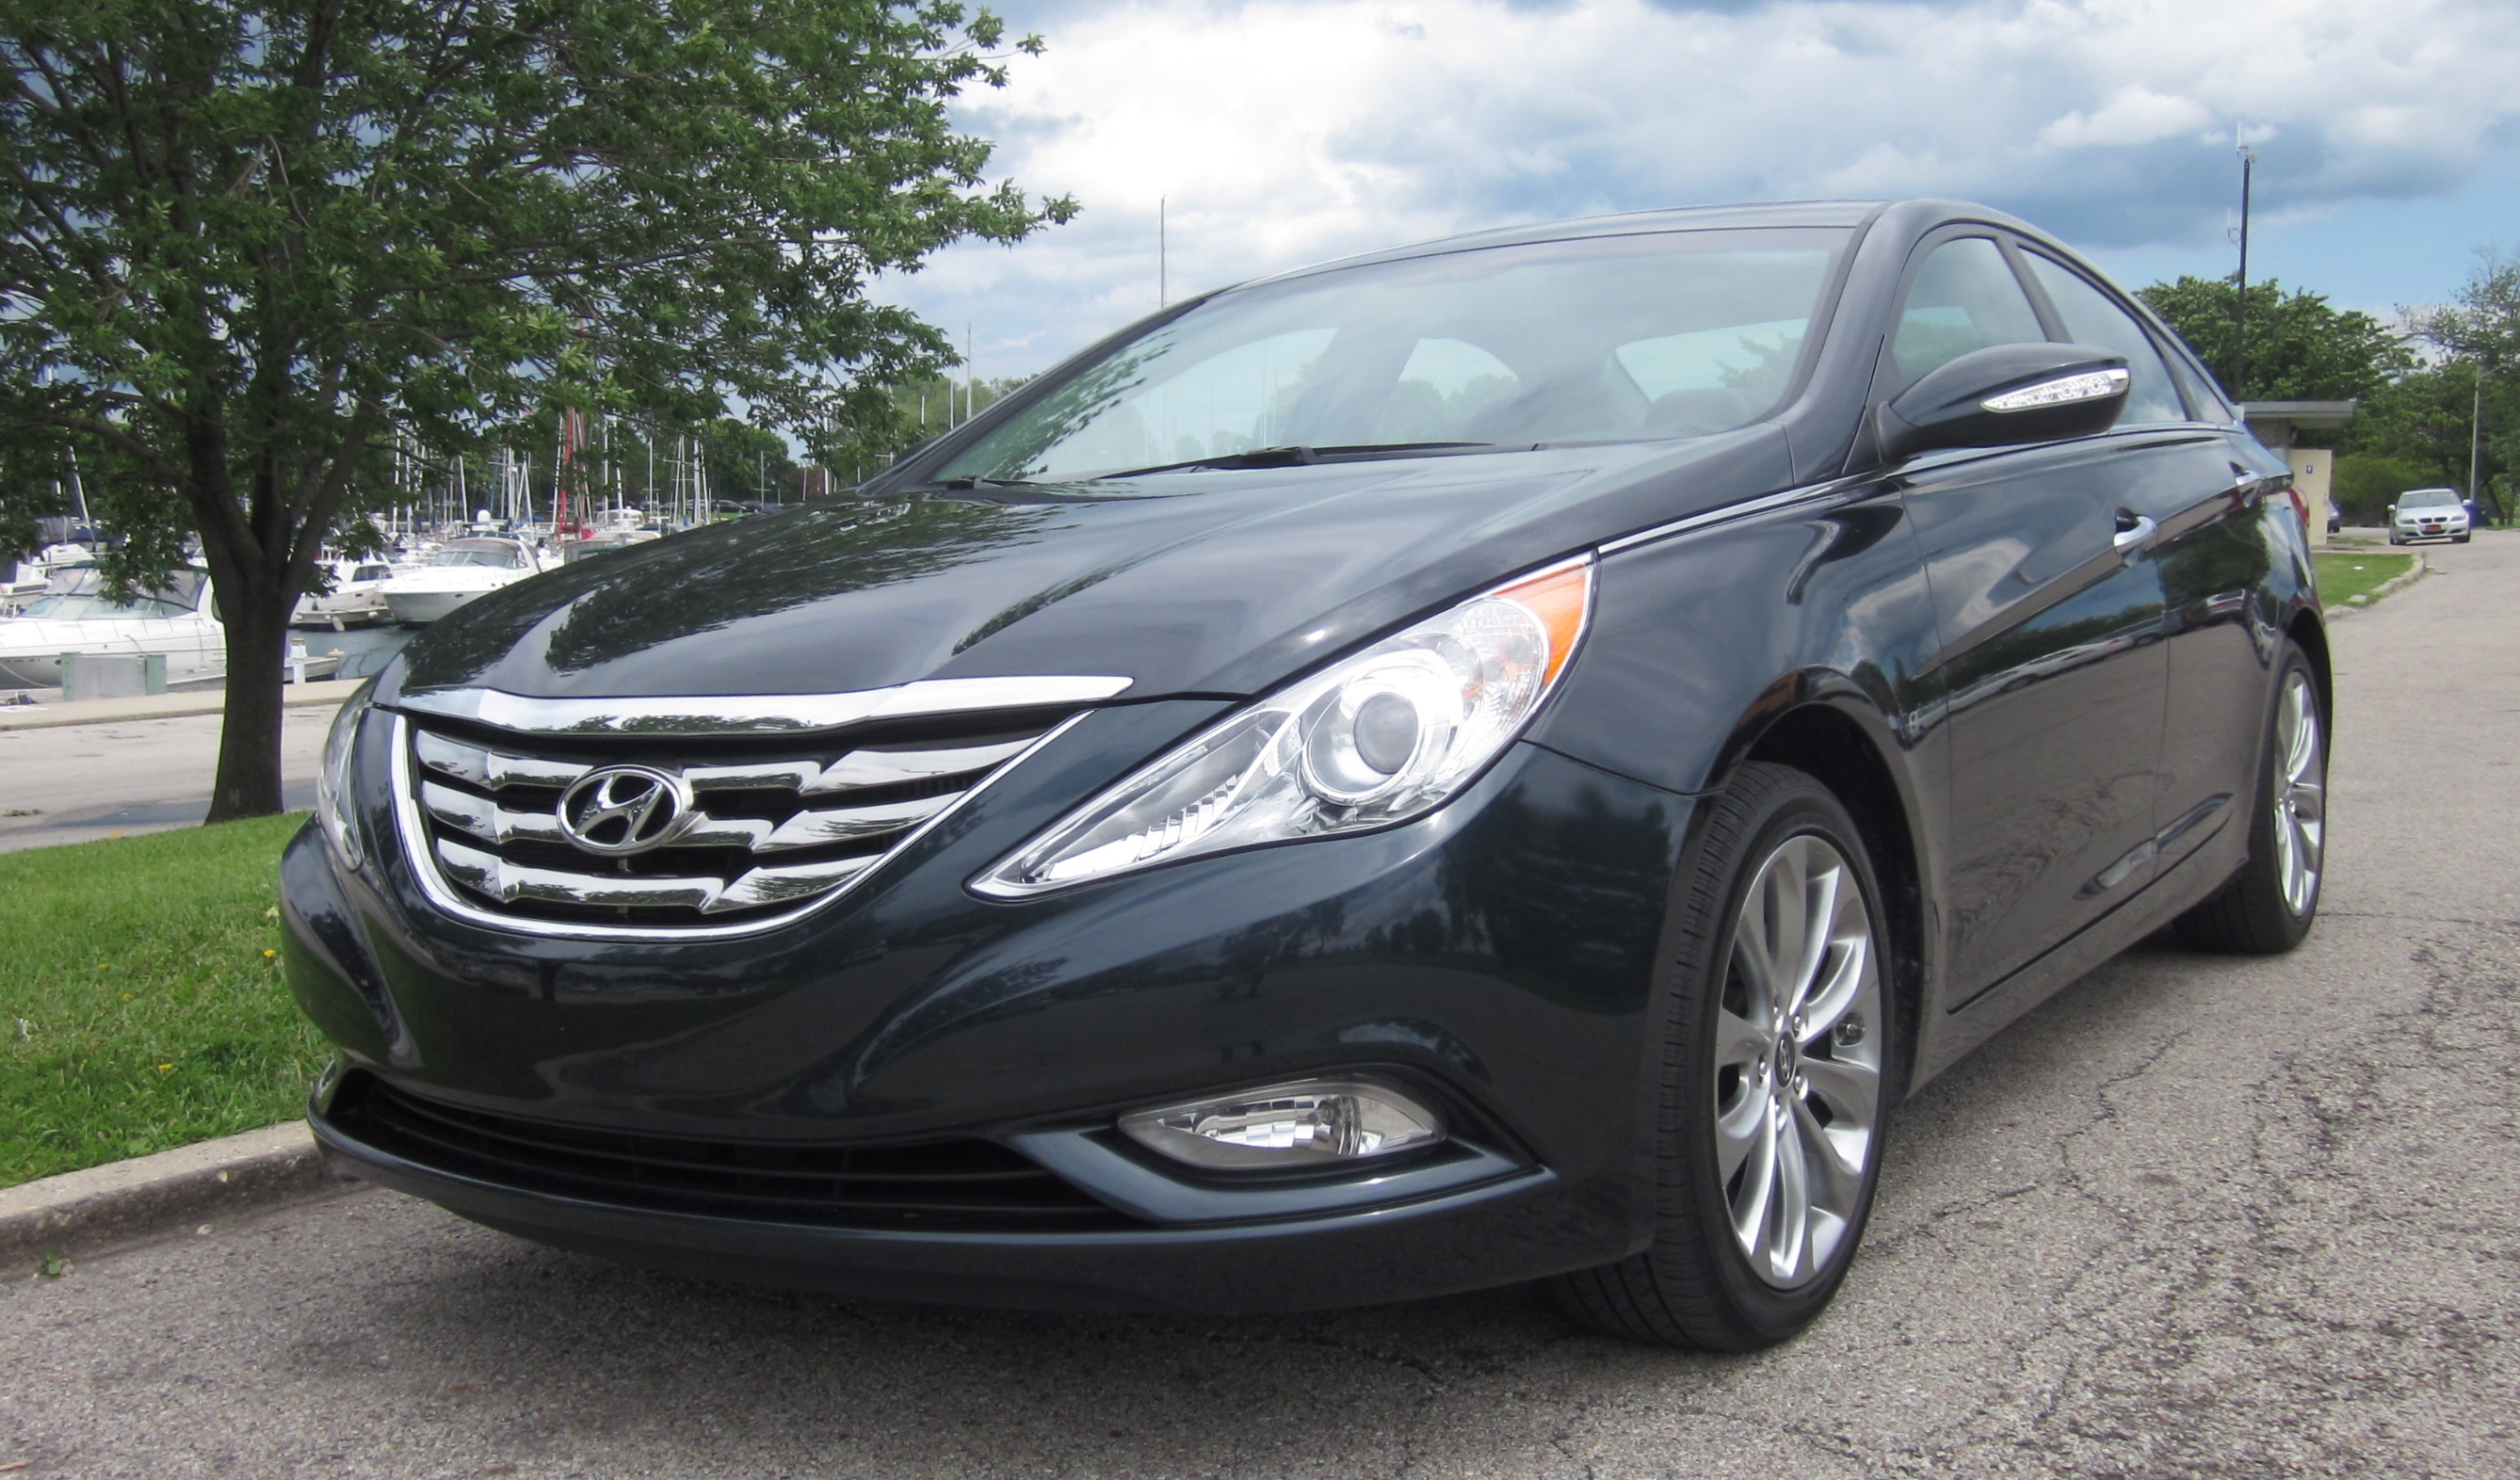 2011 Hyundai Sonata Limited Turbo Review What S Not To Like